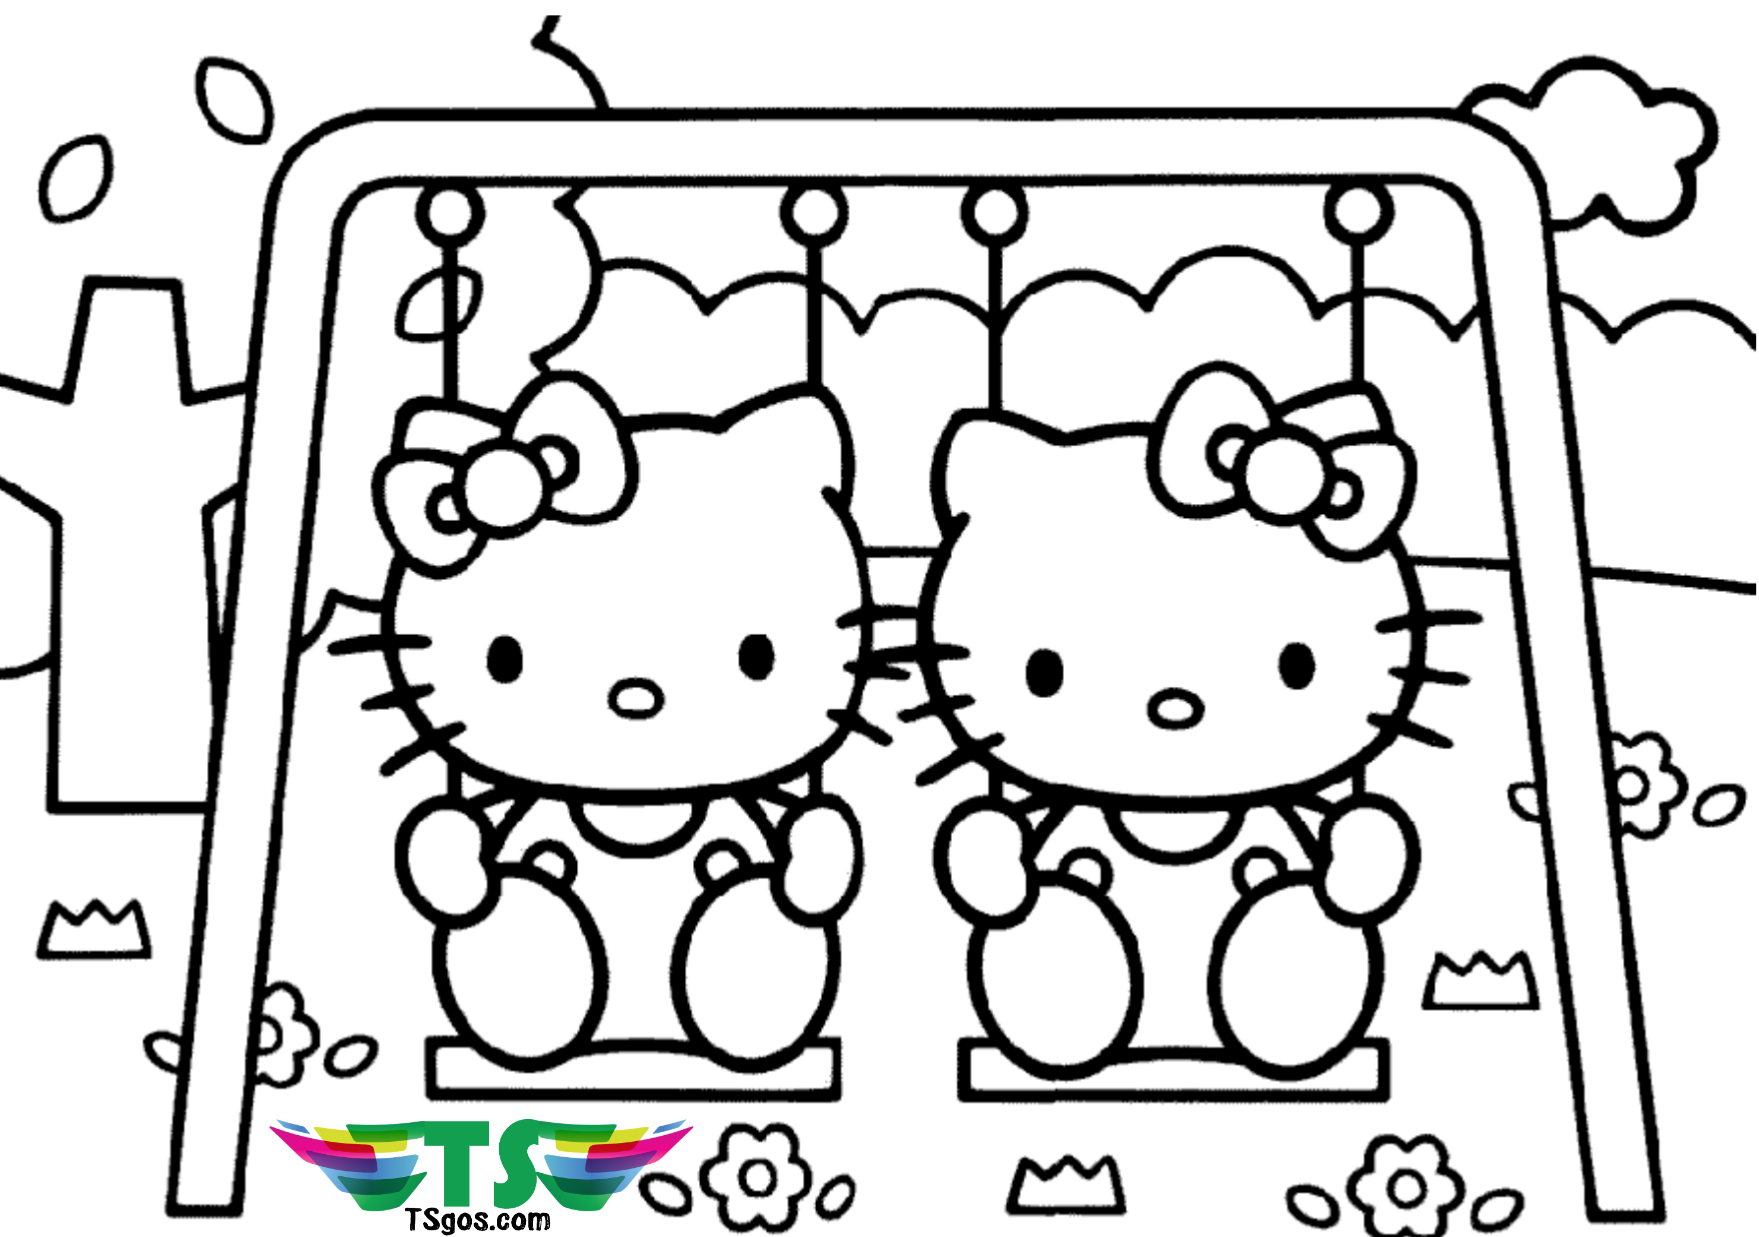 coloring pages for friendship bff pretty girl coloring pages for girls coloring our world friendship coloring for pages